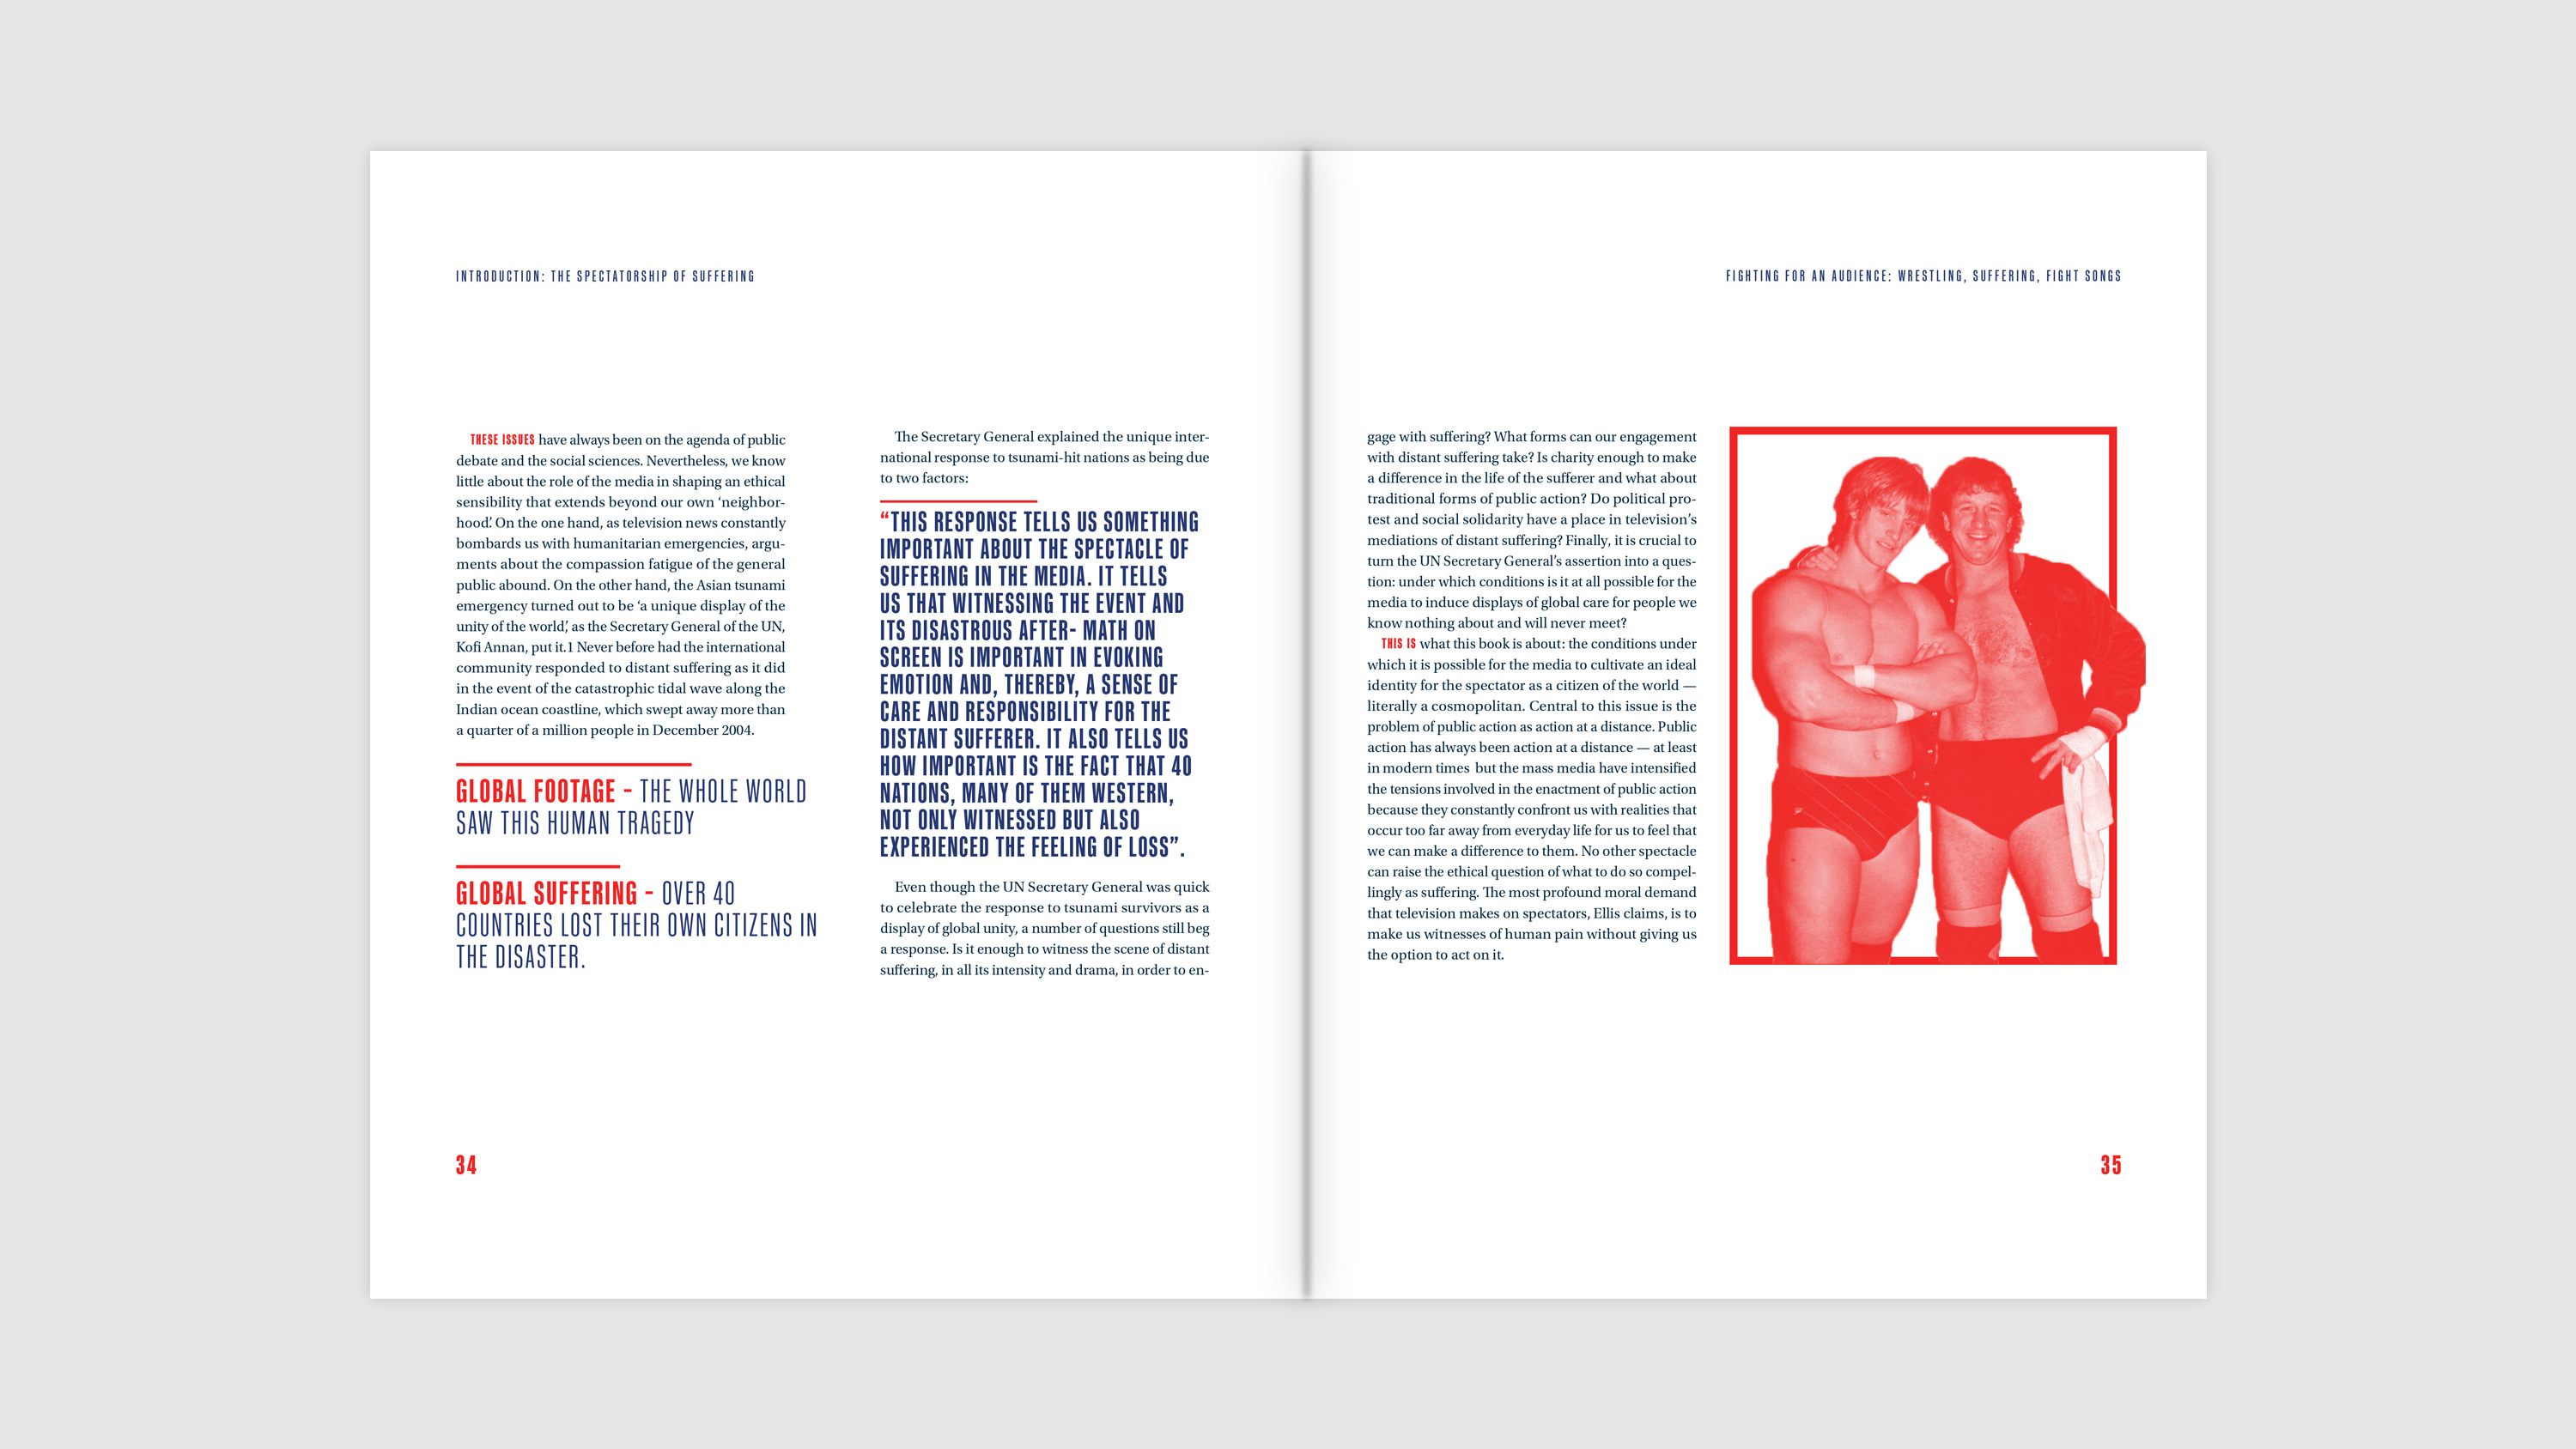 Book spread showing body copy, quotes, pull-out definitions, and imagery